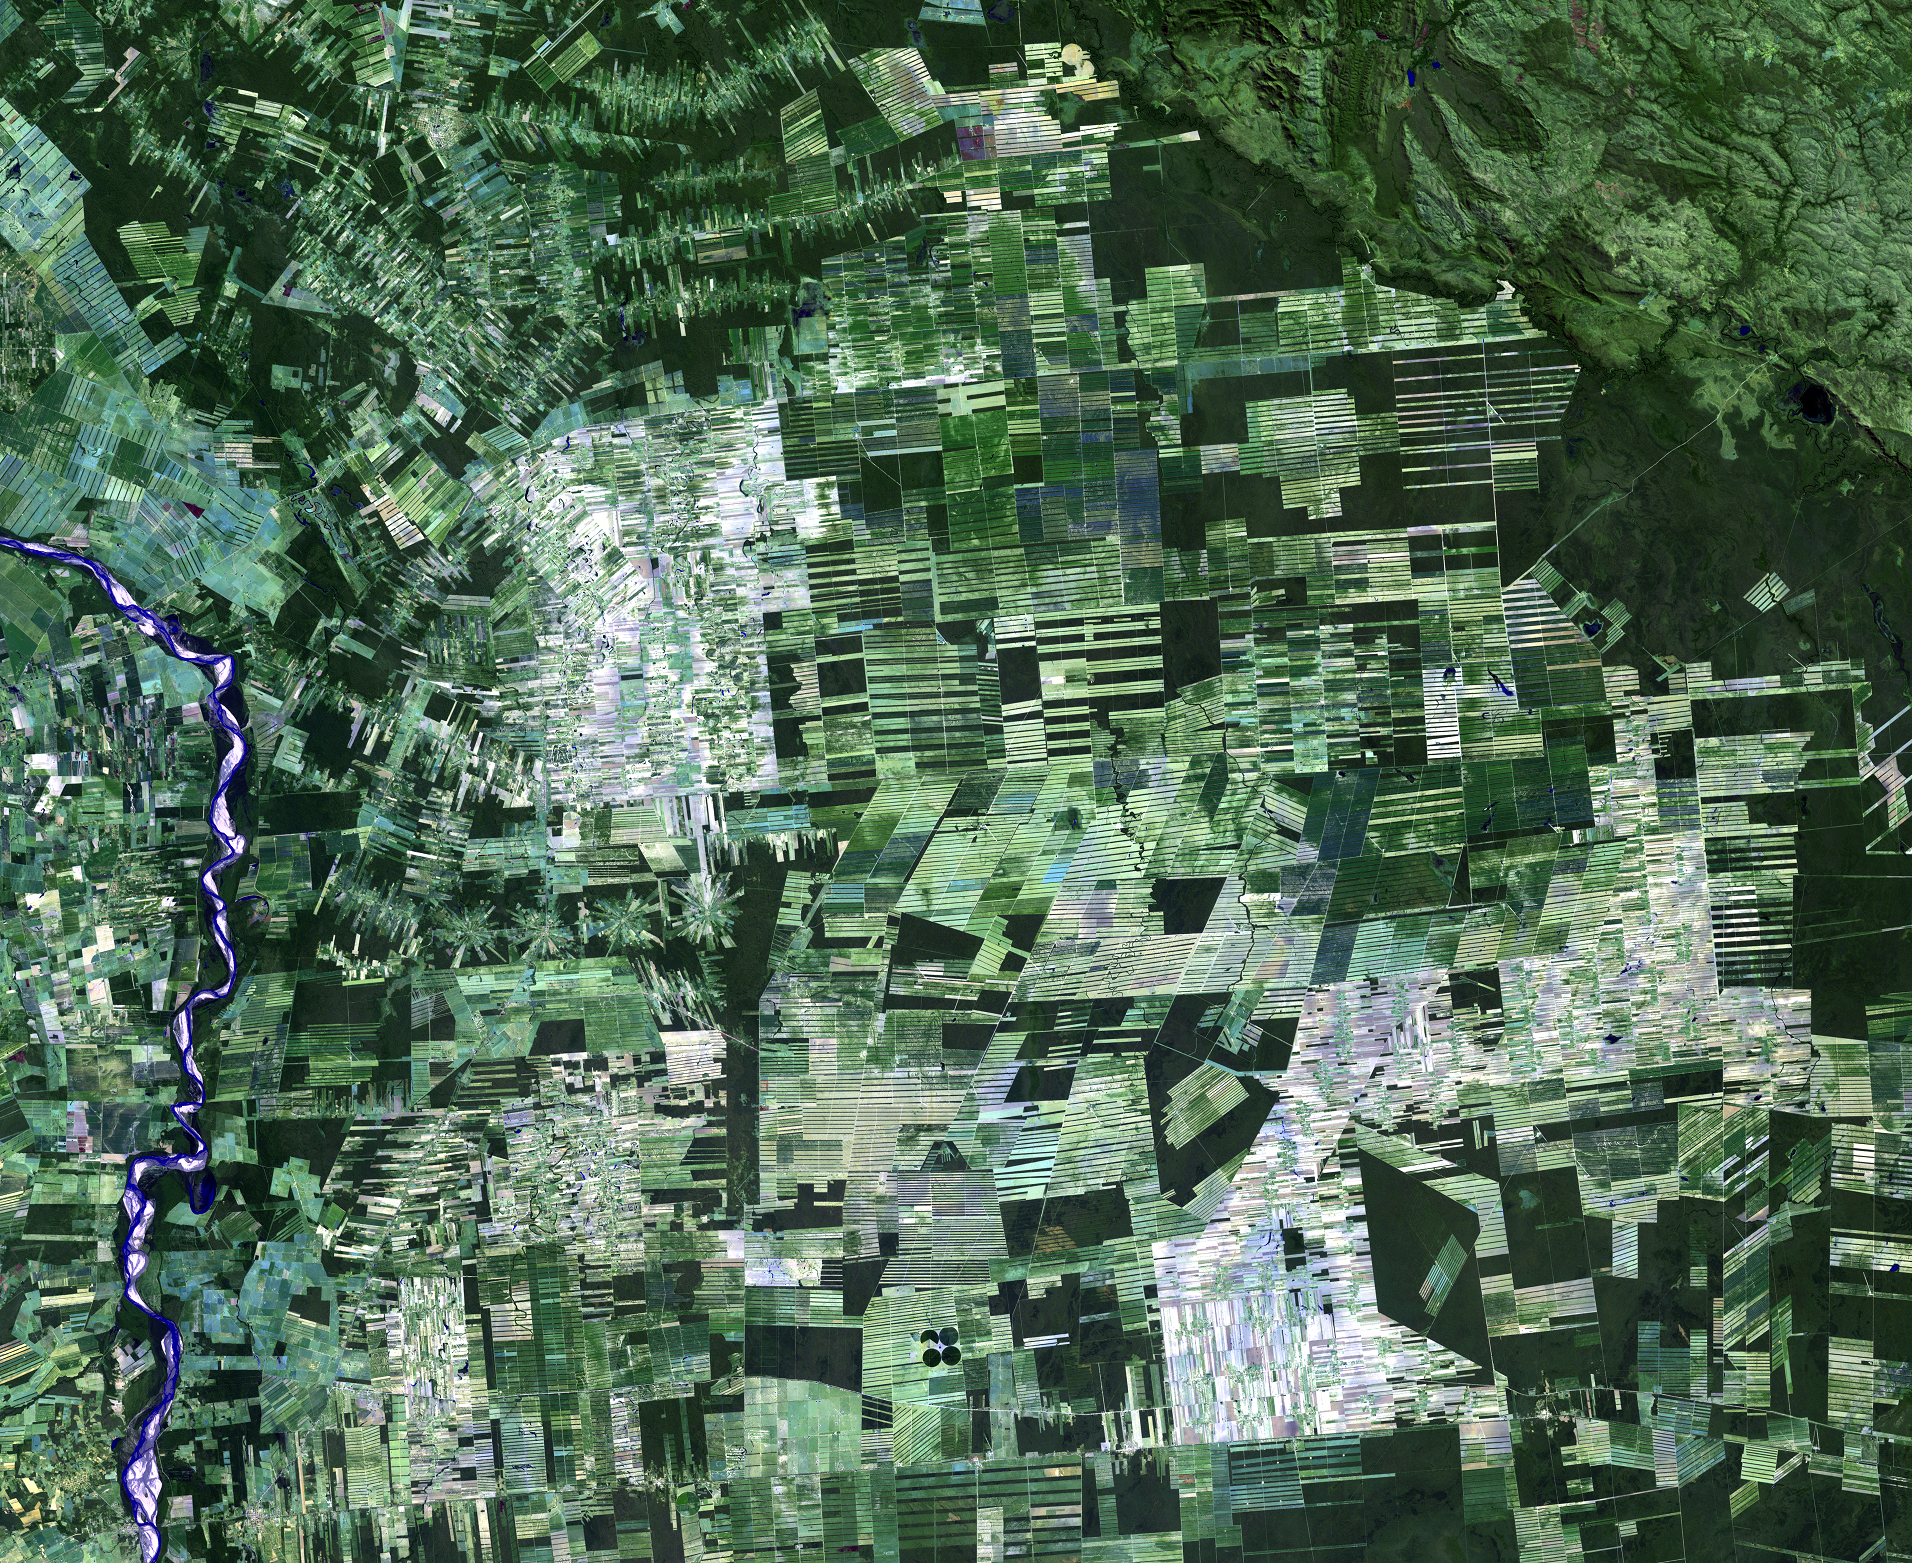 Aug. 1, 2000, Landsat 5 (path/row 230/72) — Deforestation, Santa Cruz, Bolivia